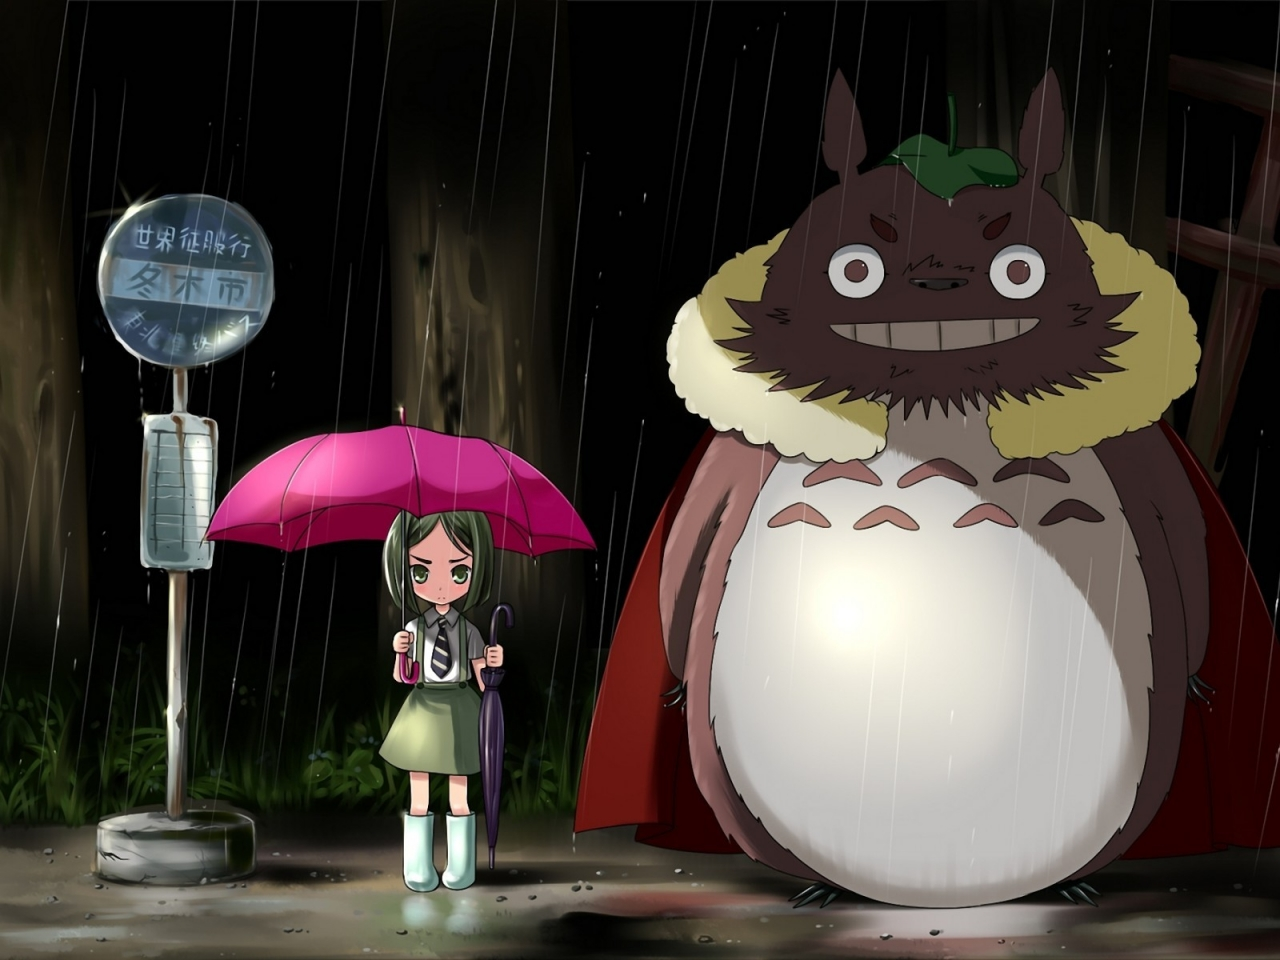 My Neighbor Totoro for 1280 x 960 resolution